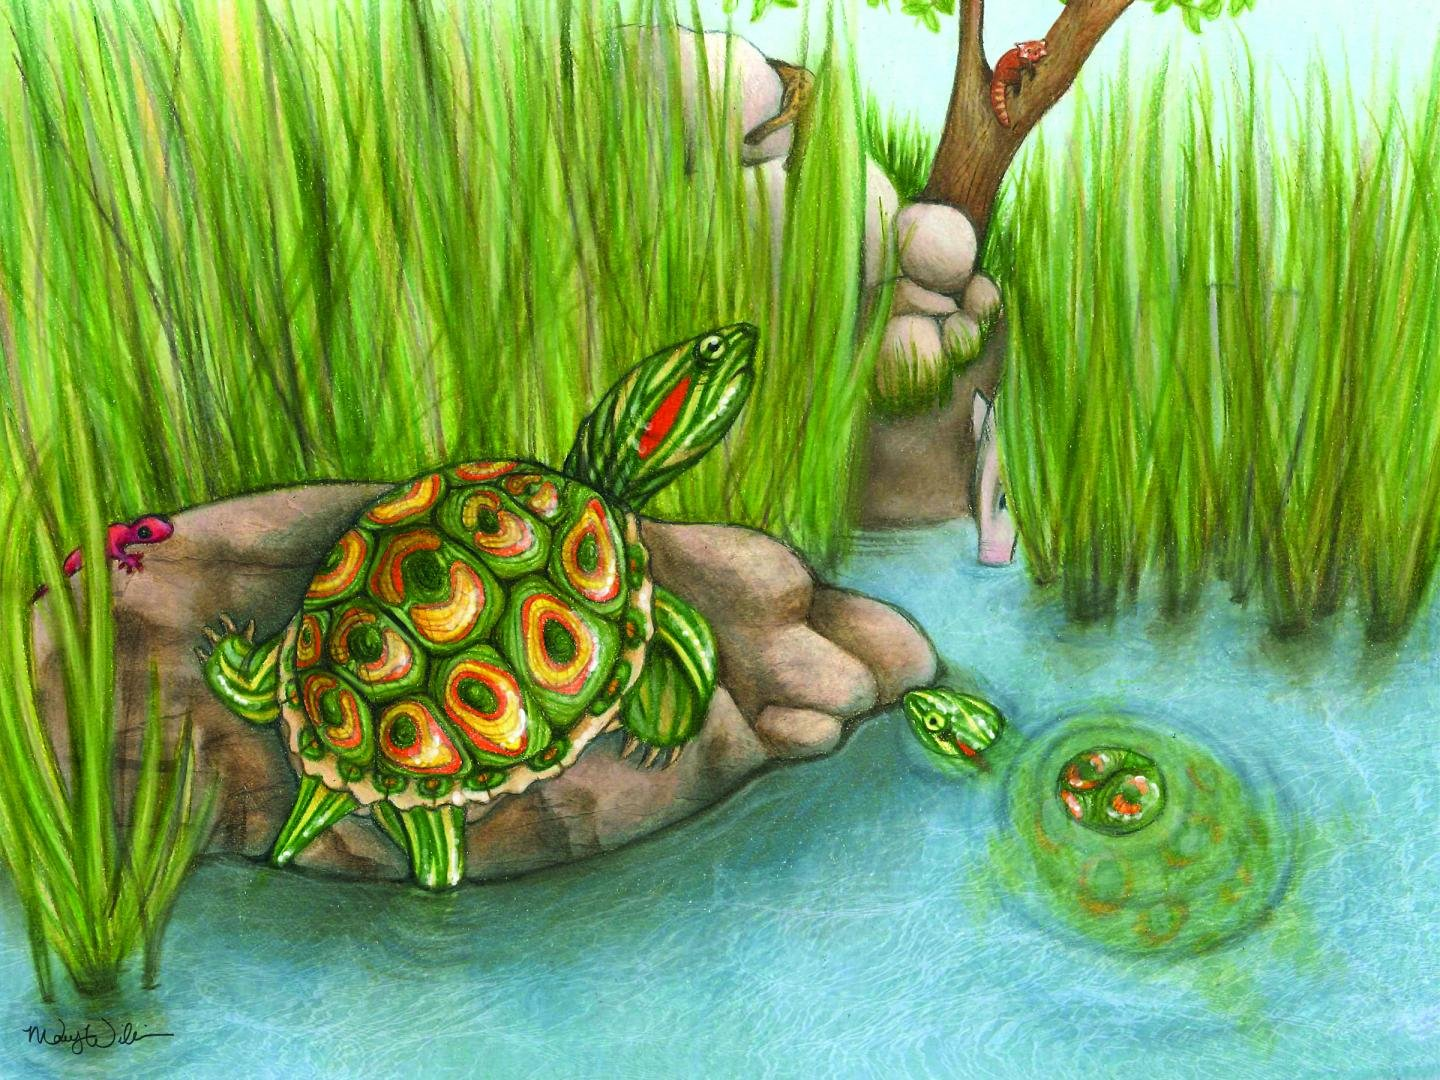 5.5 million-year-old fossil turtle species sheds light on invasive ...